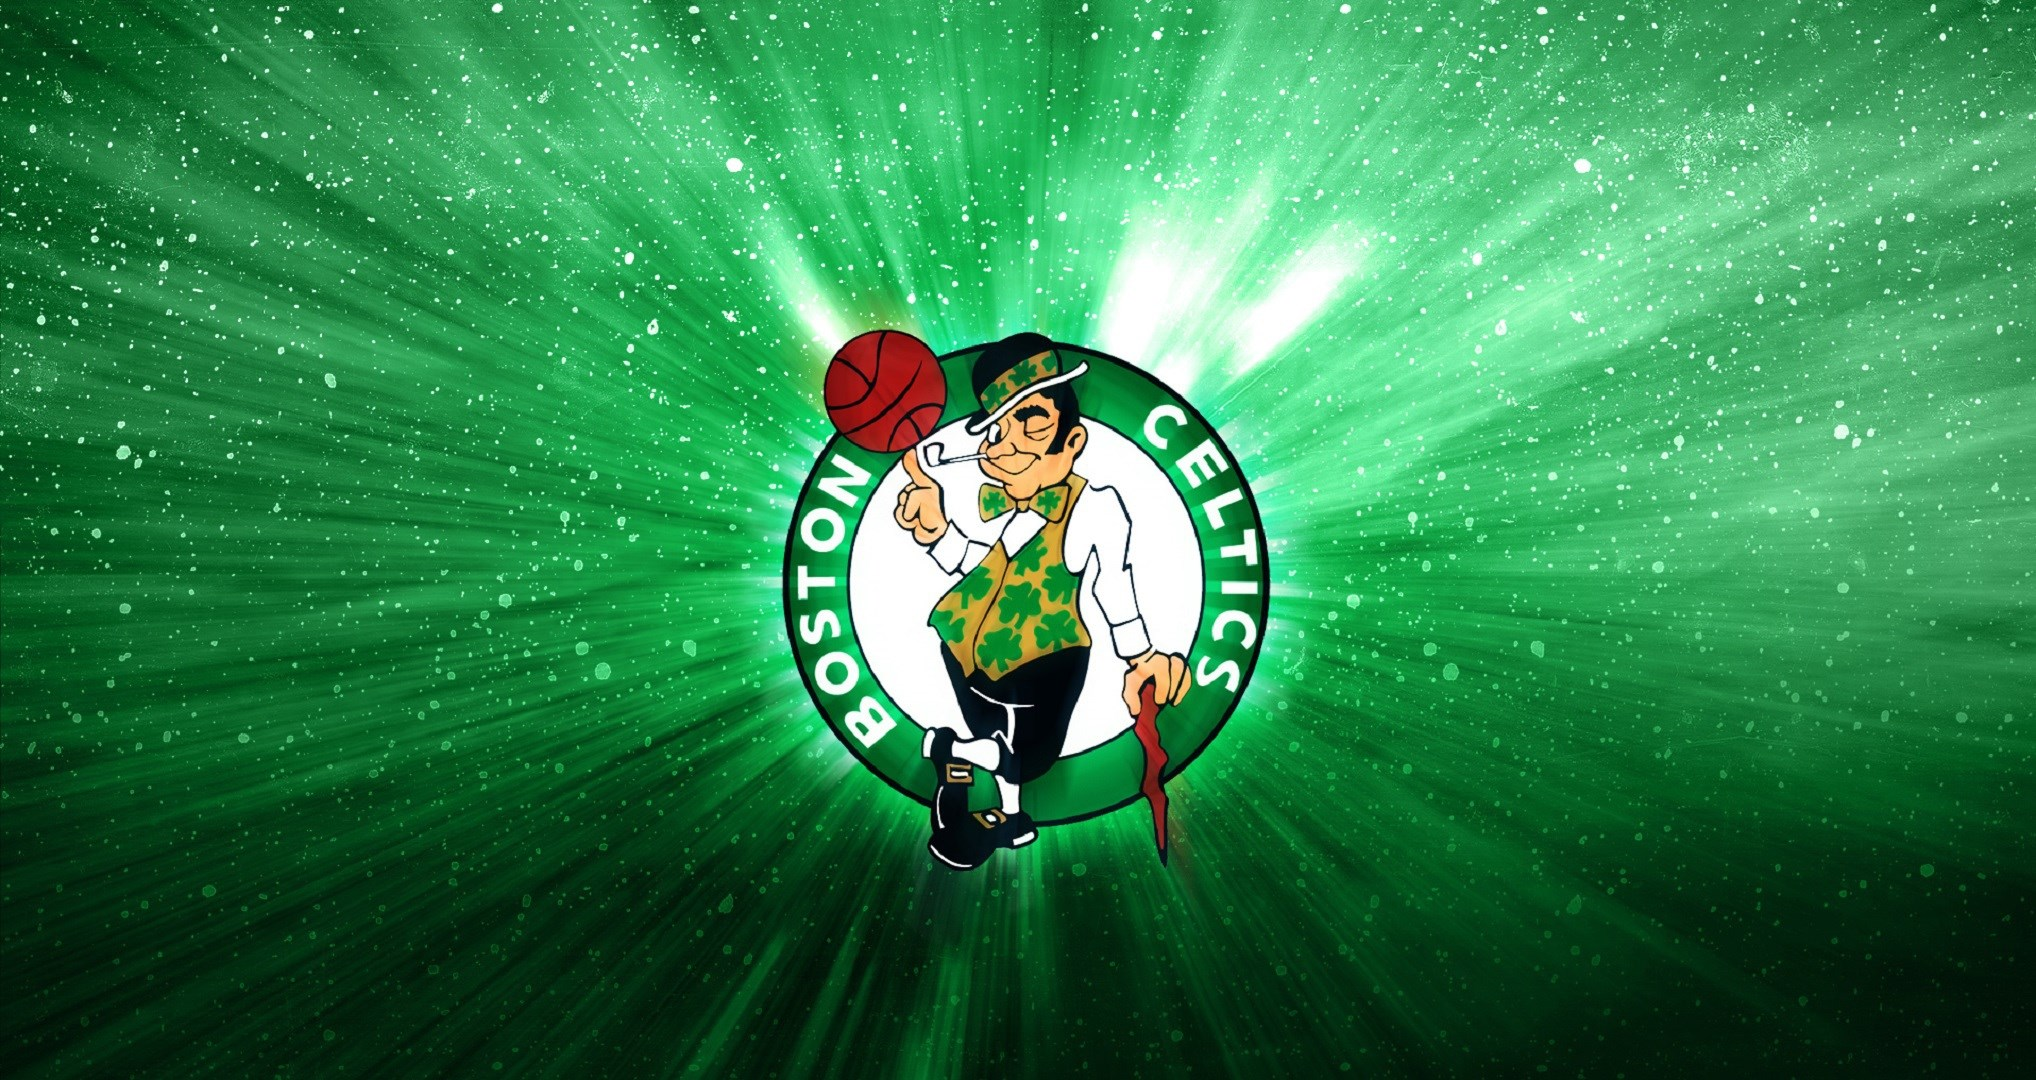 boston-celtics-background-free-kB-Wilder-Stevenson-wallpaper-wp3403473